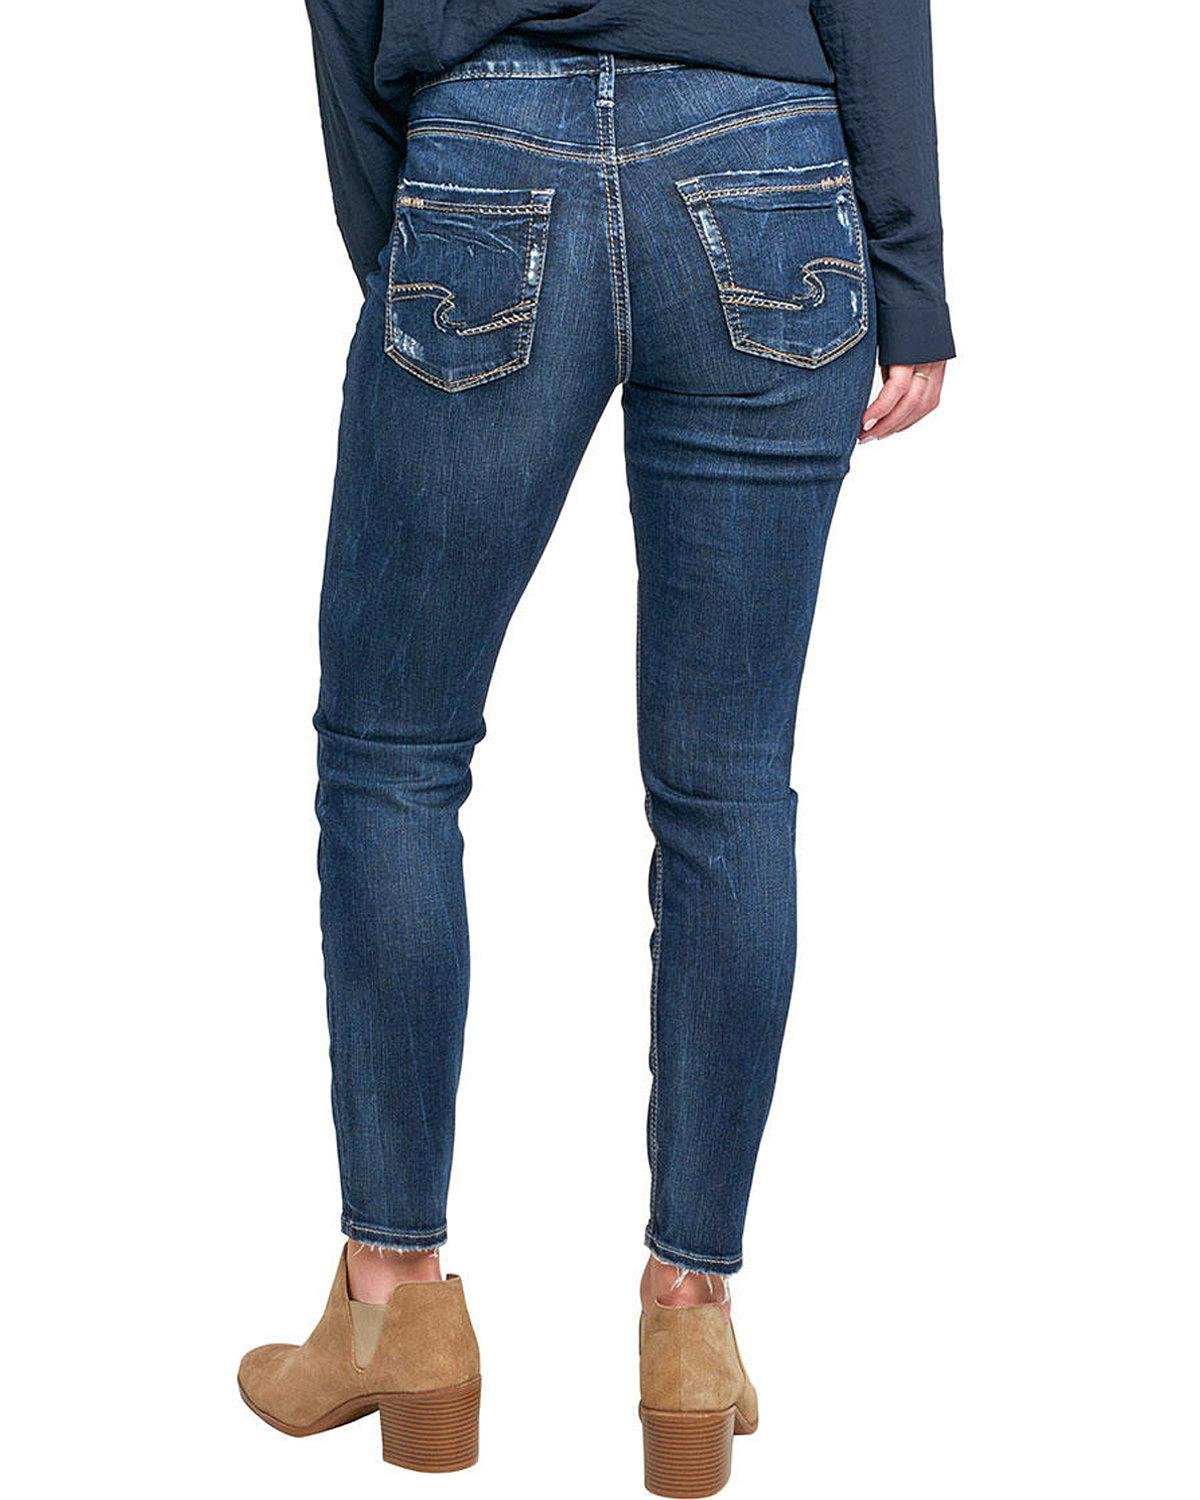 Silver Jeans Co. Women's Avery Curvy Fit High Rise Ankle Skinny, Dark Vintage Wash, 28